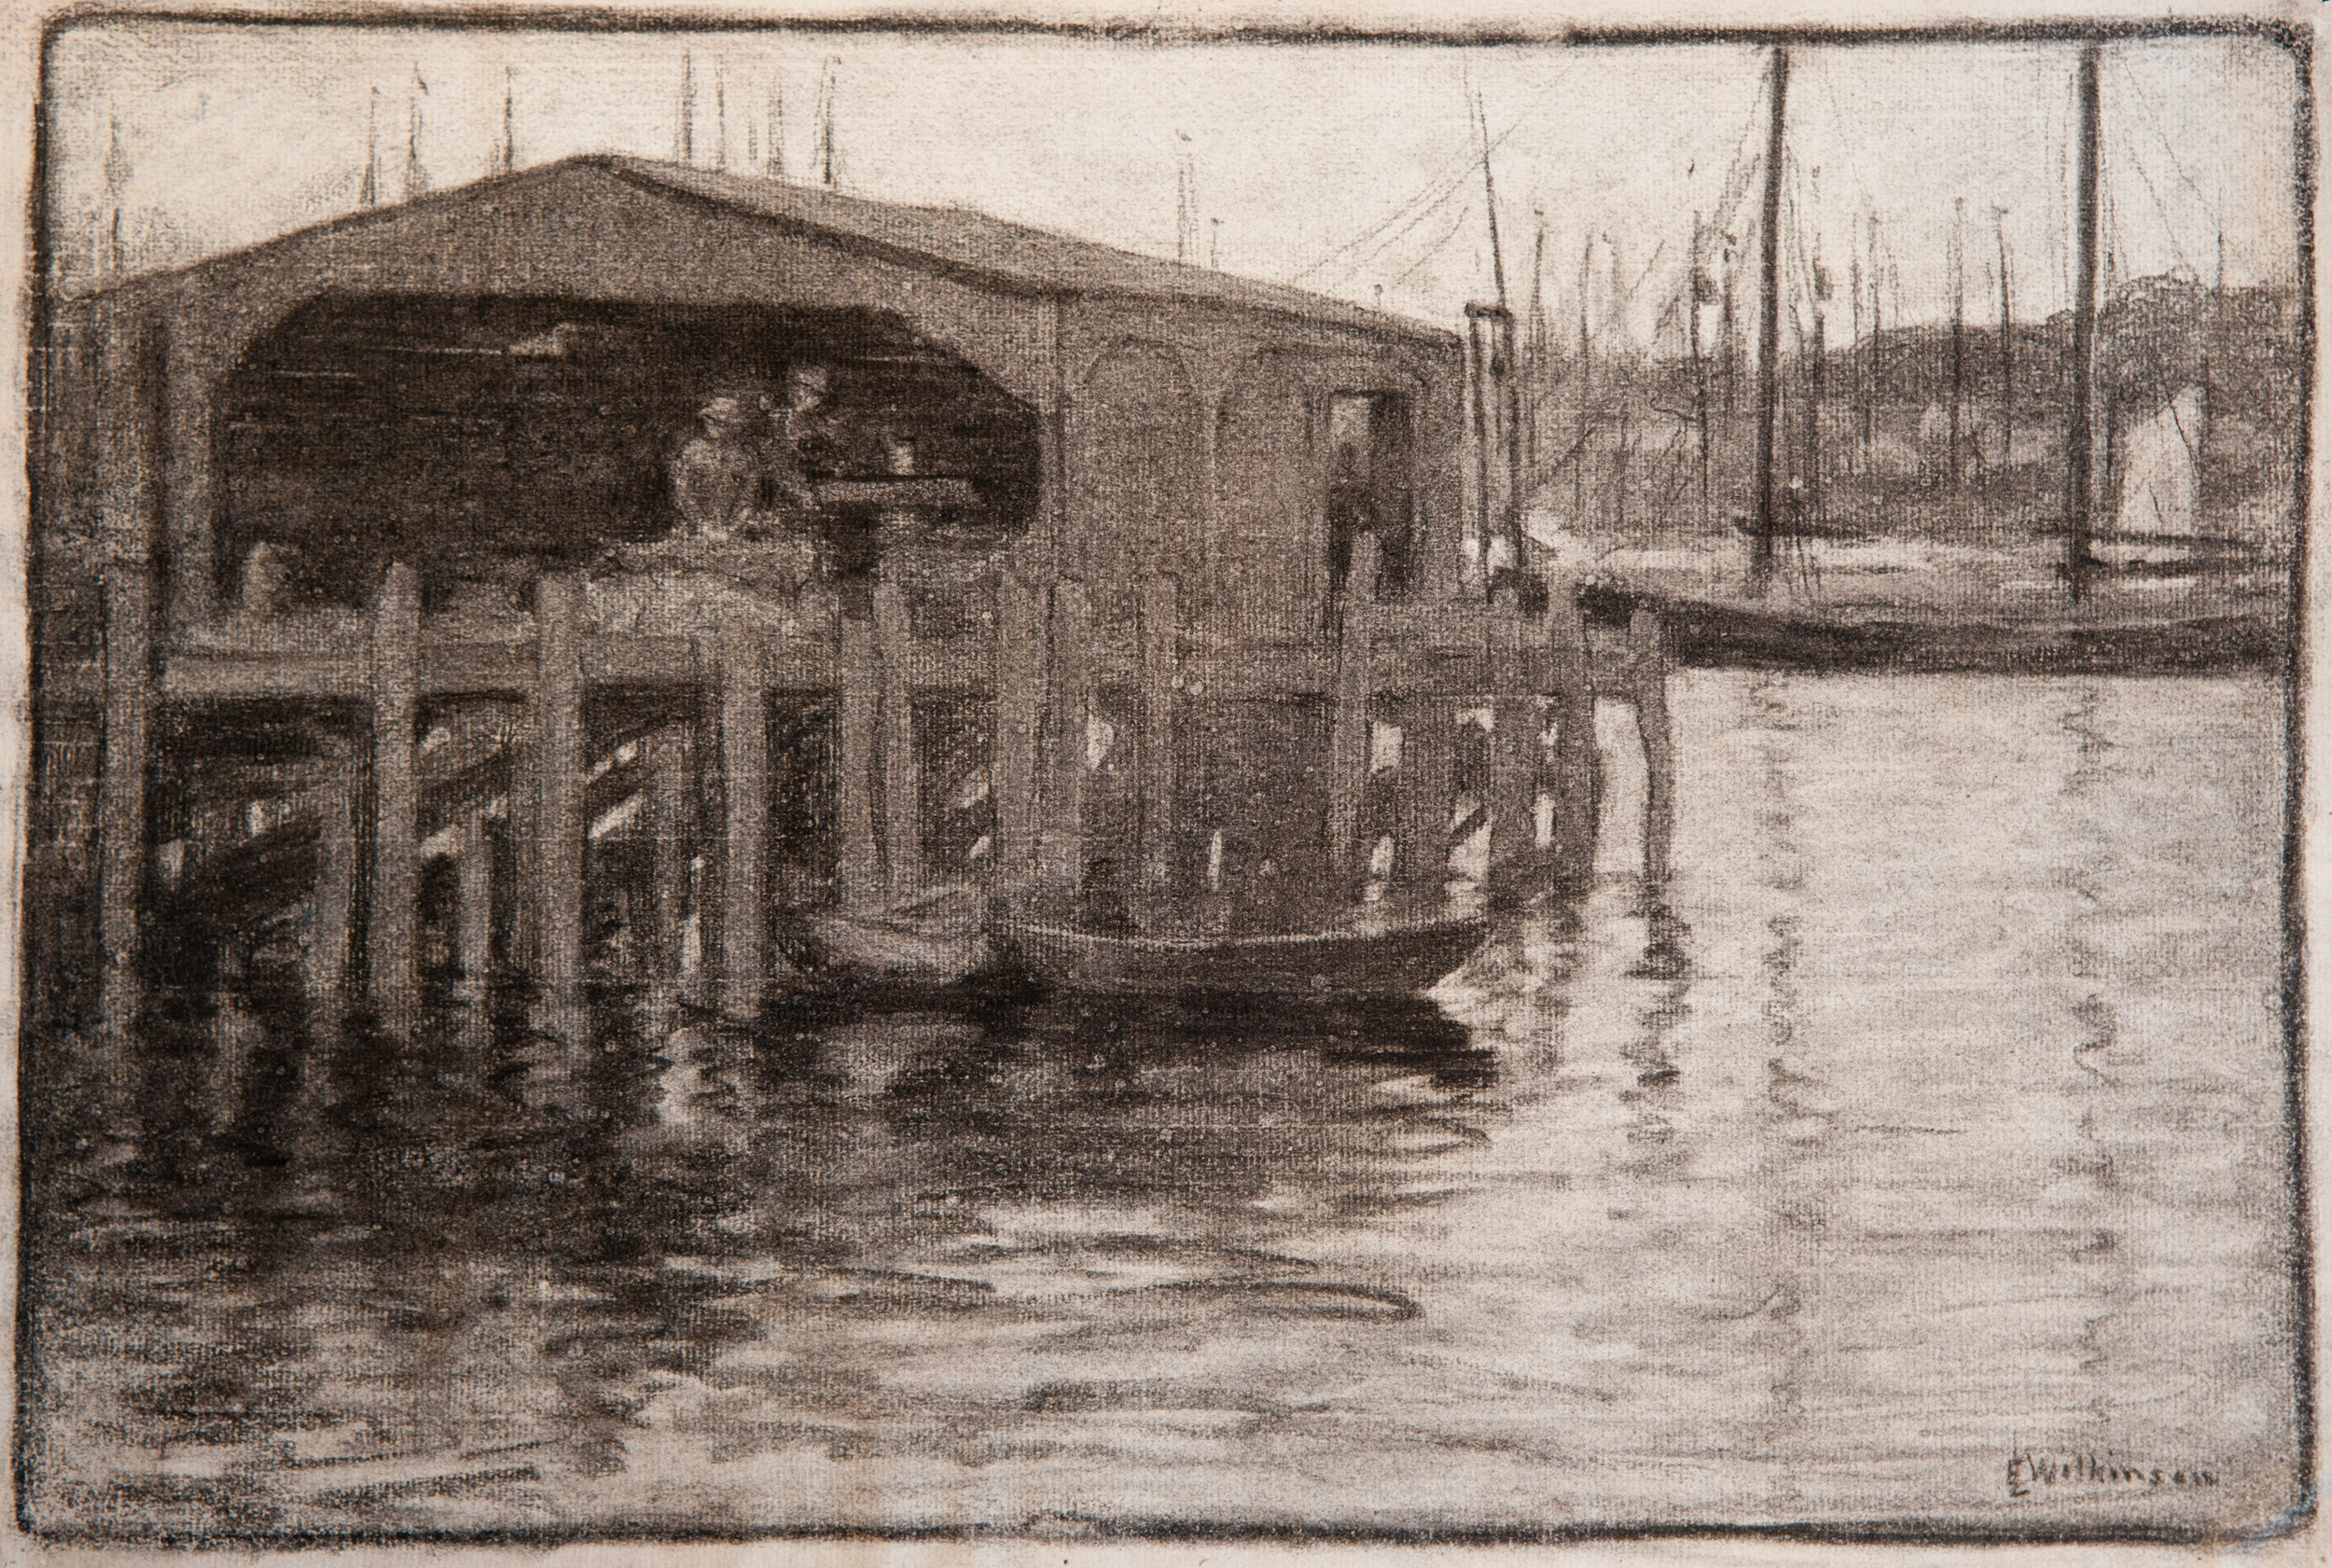 Provincetown Dock (Charcoal) by Edith Lake Wilkinson